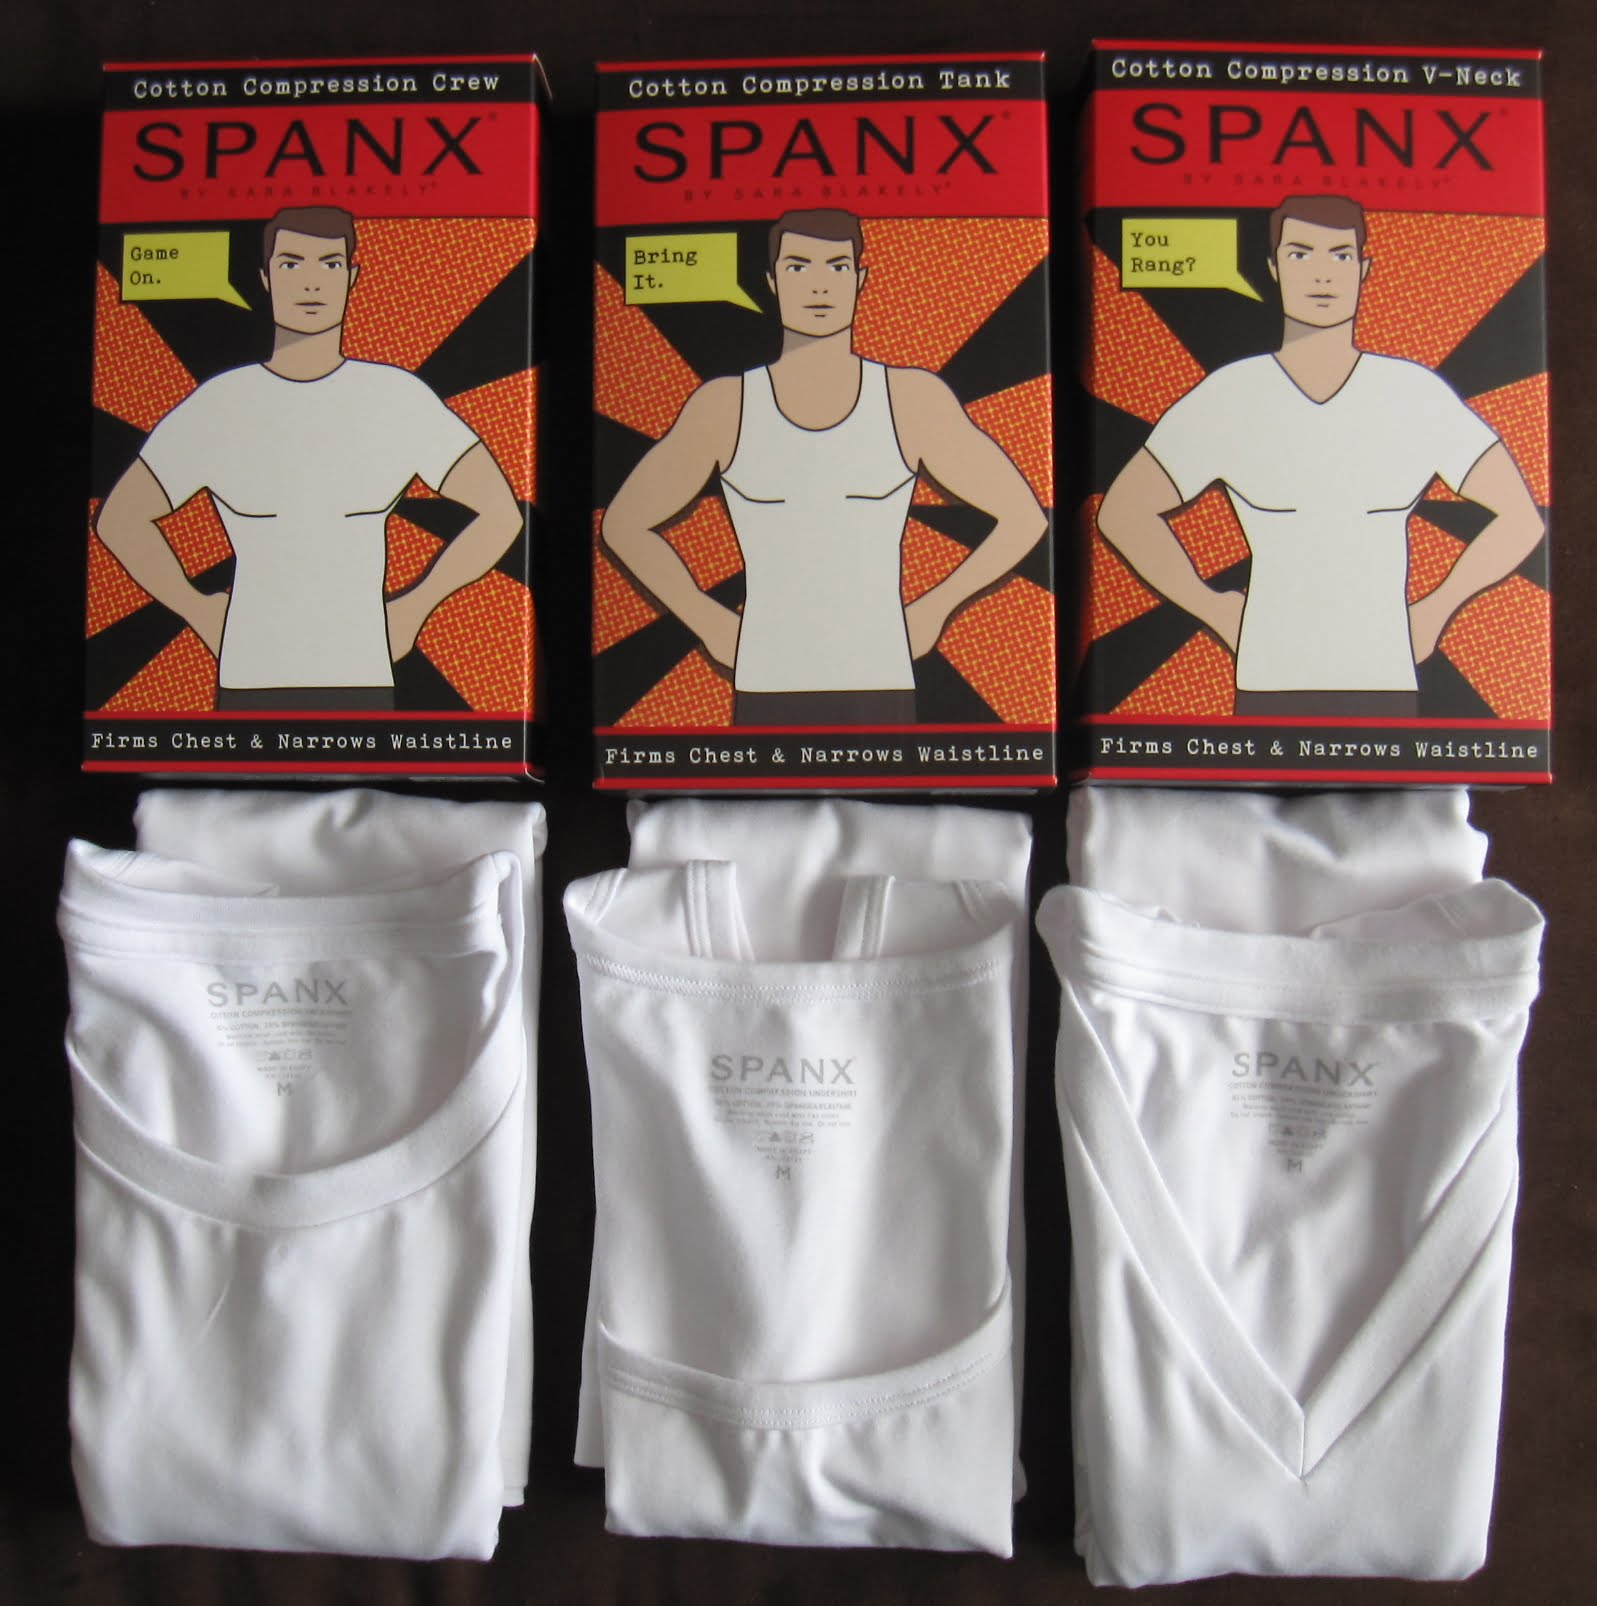 9d76fec373cbe8 Cotton Compression Undershirt Review  Spanx for Men